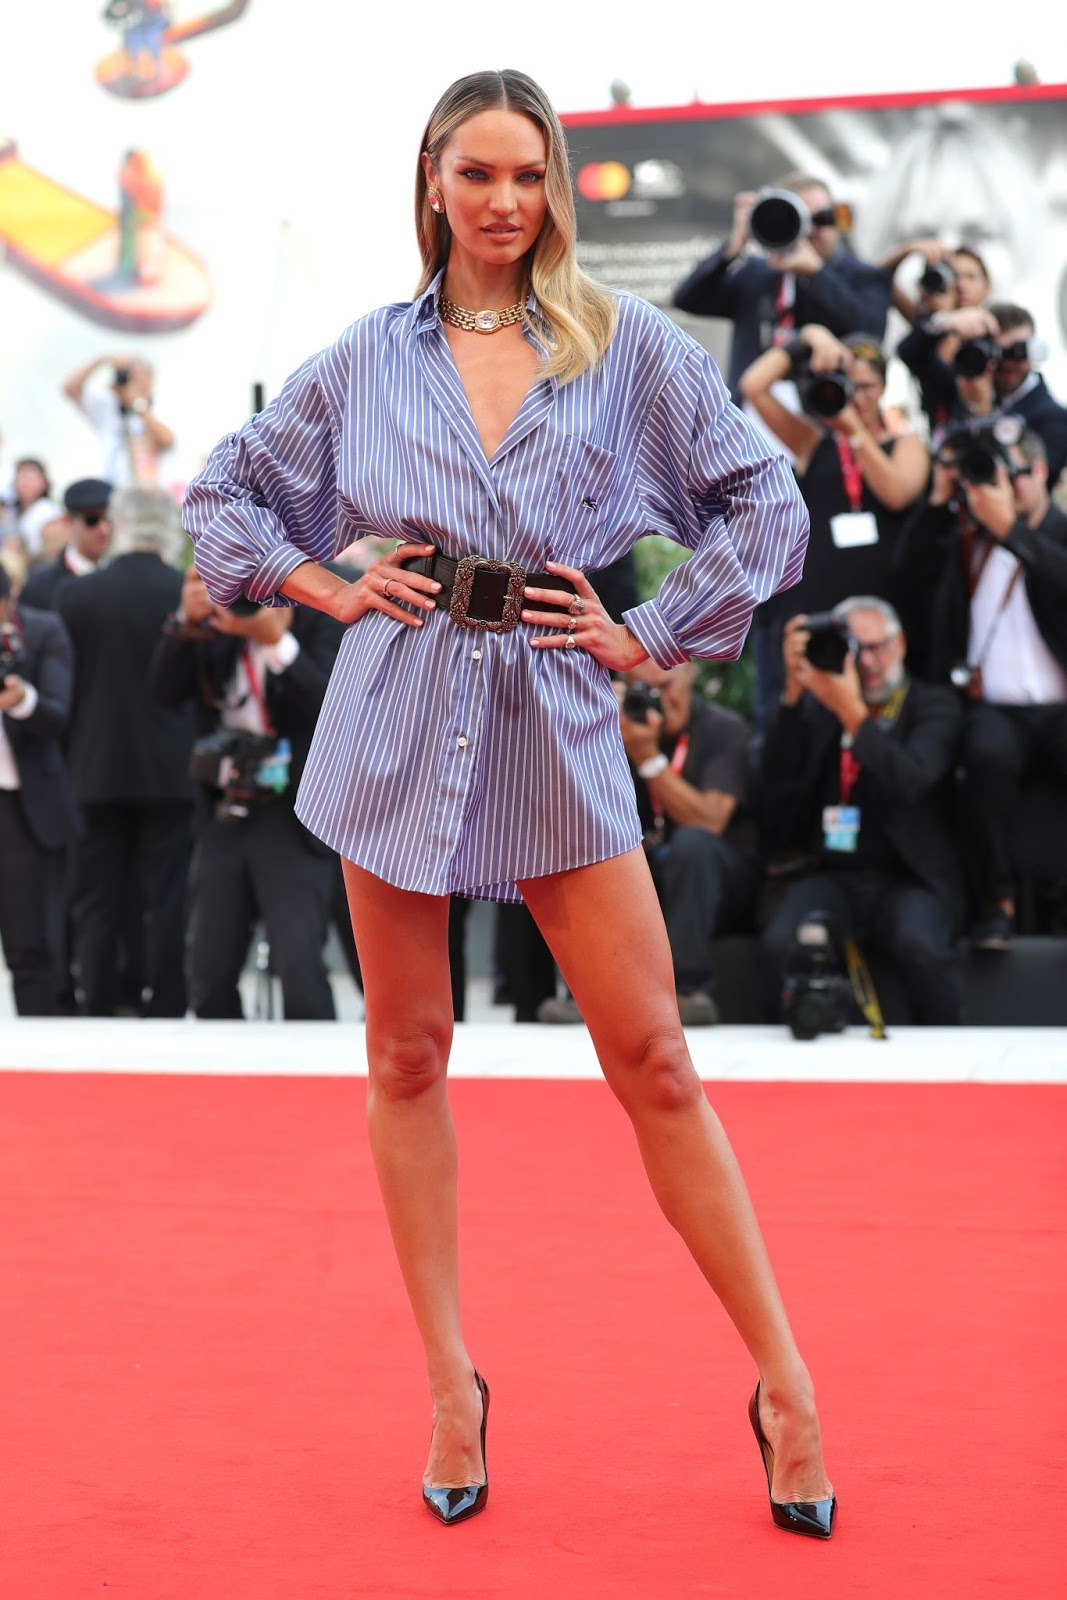 Candice Swanepoel – 'Marriage Story' Premiere at the 2019 Venice Film Festival red carpet